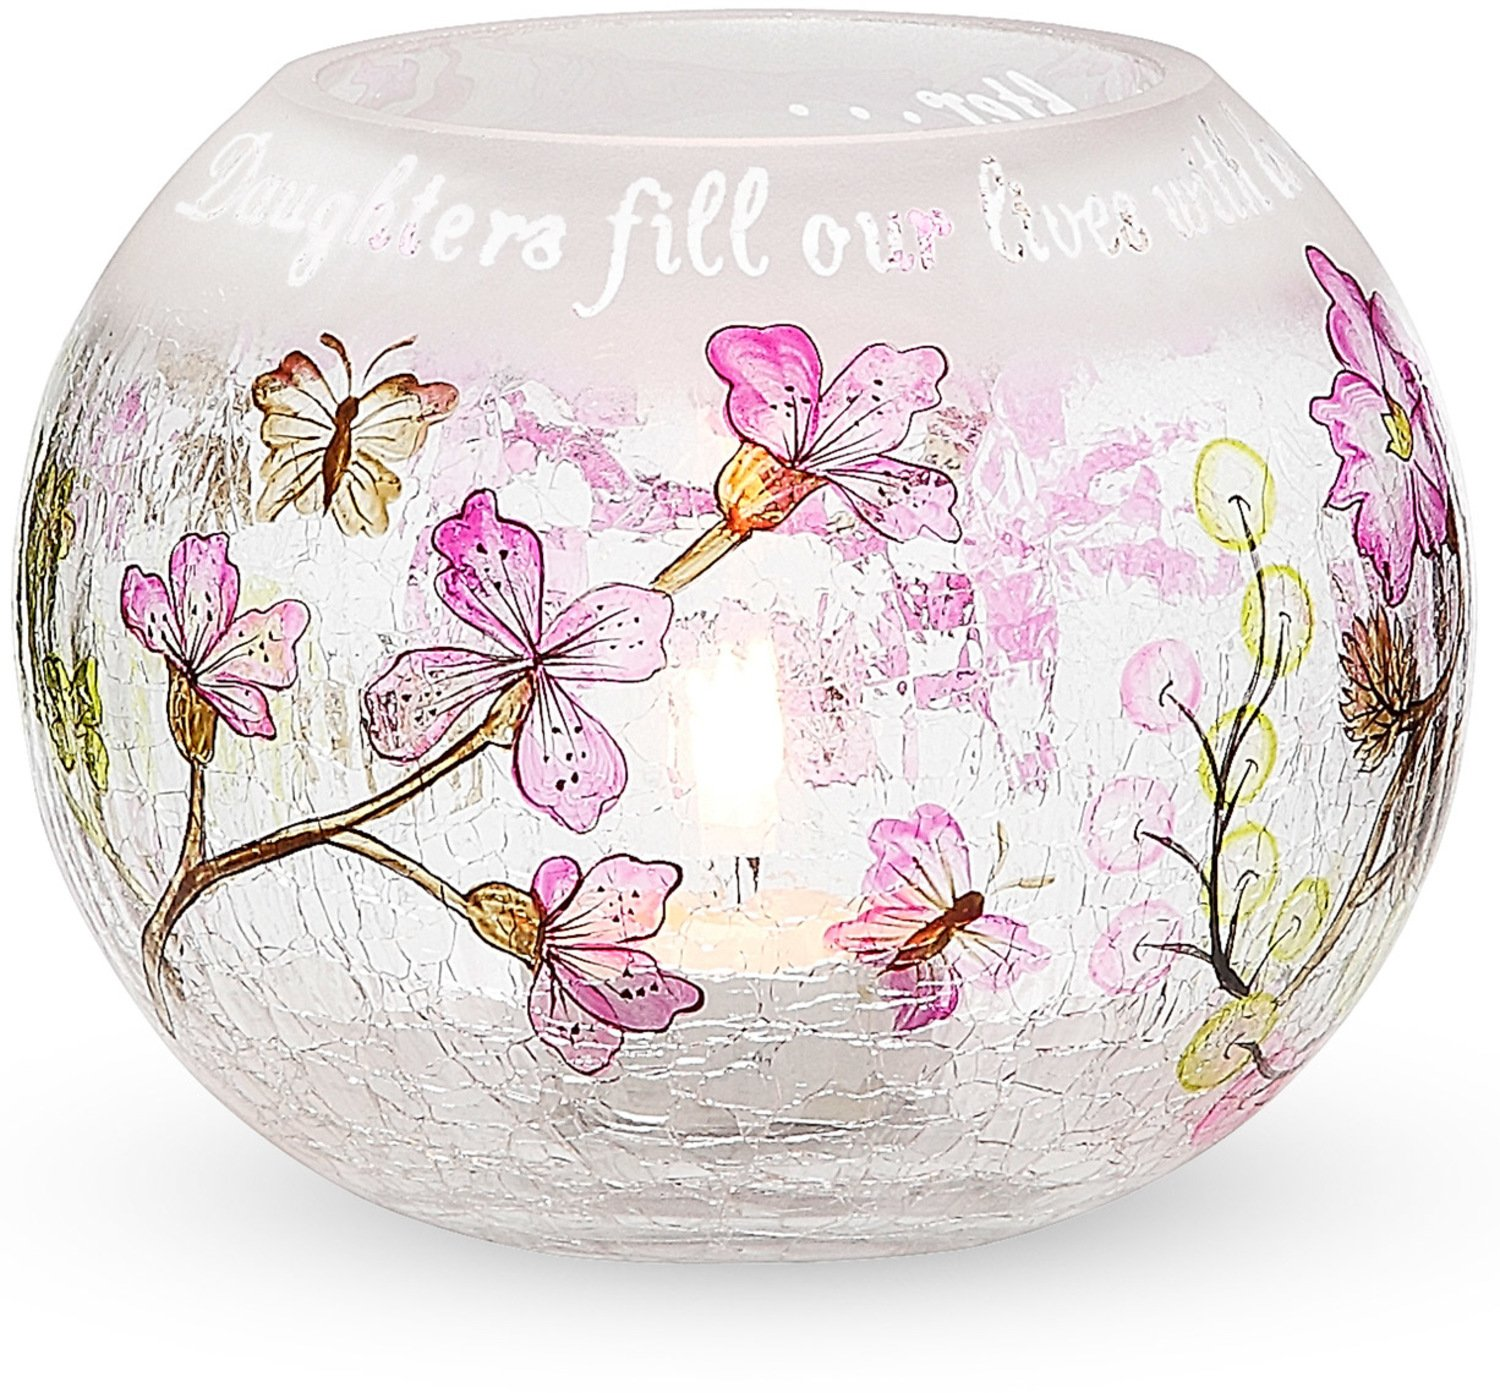 Mark My Words 5-Inch Round Hurricane Crackled Glass Candle Holder, Daughter Sentiment Pavilion Gift Company 66257